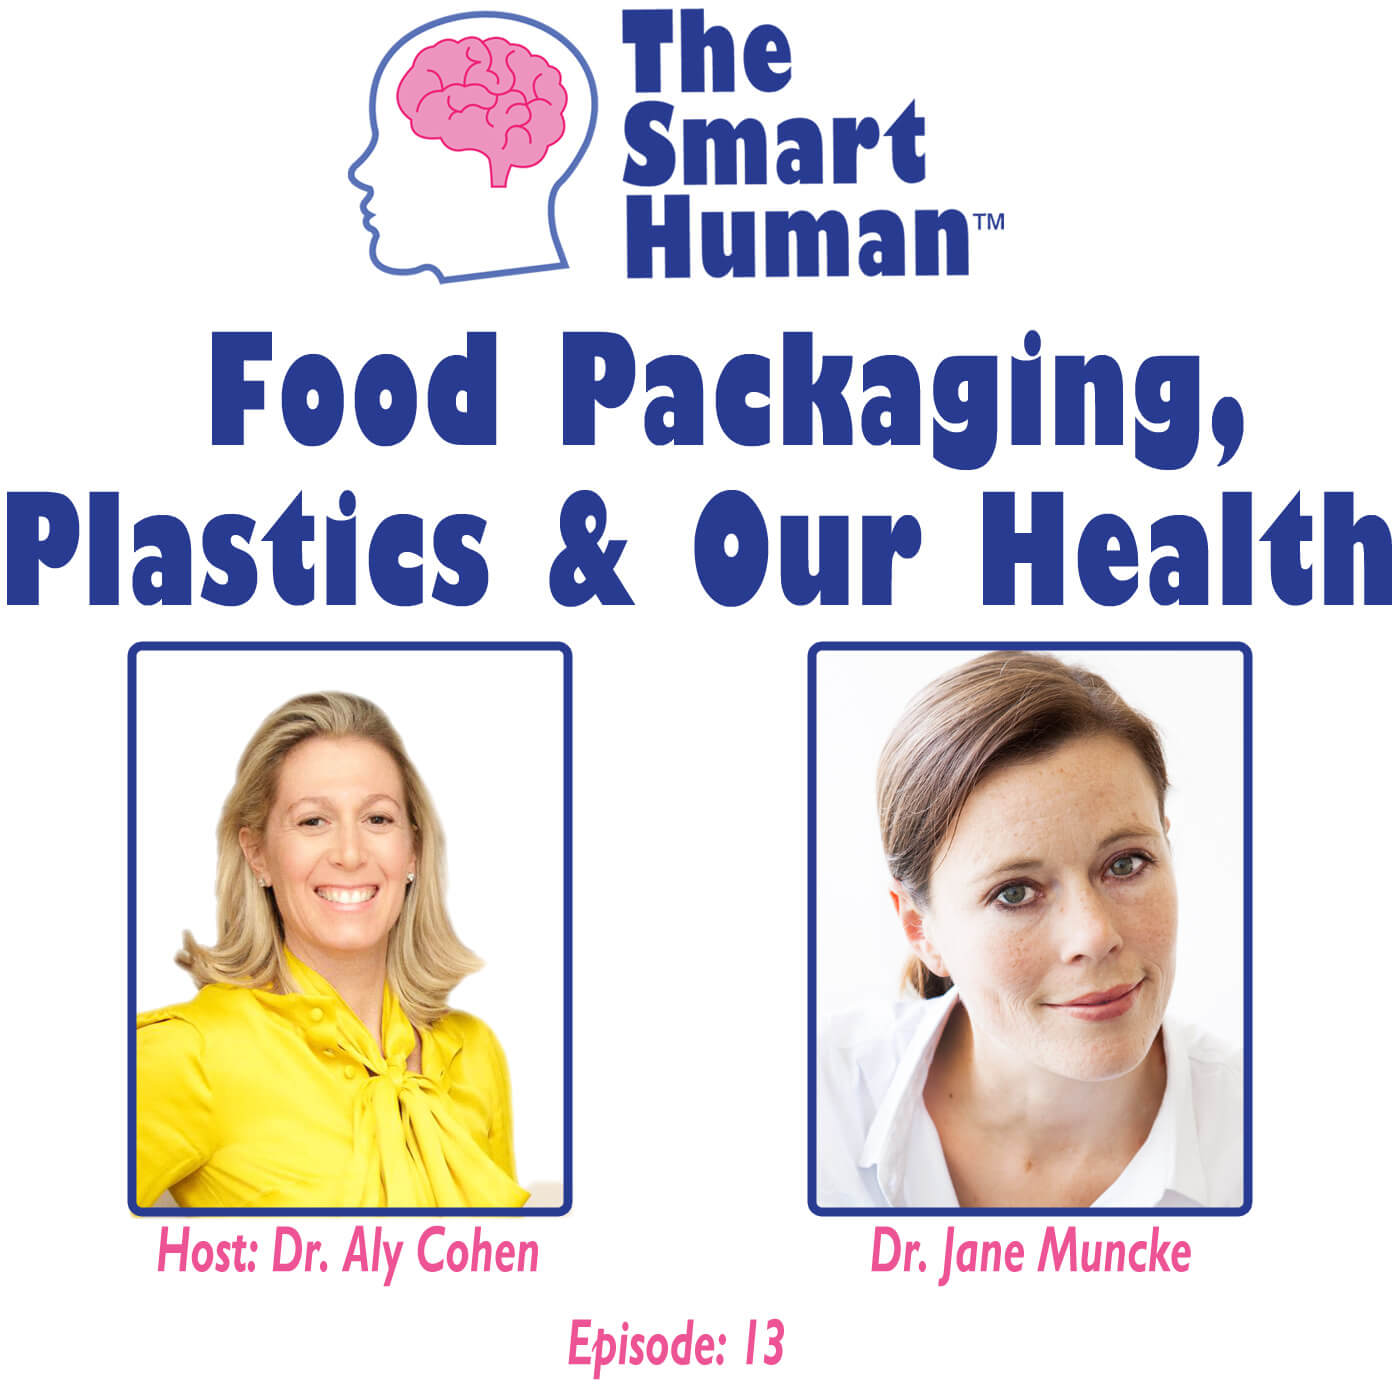 The Smart Human Podcast Episode-13